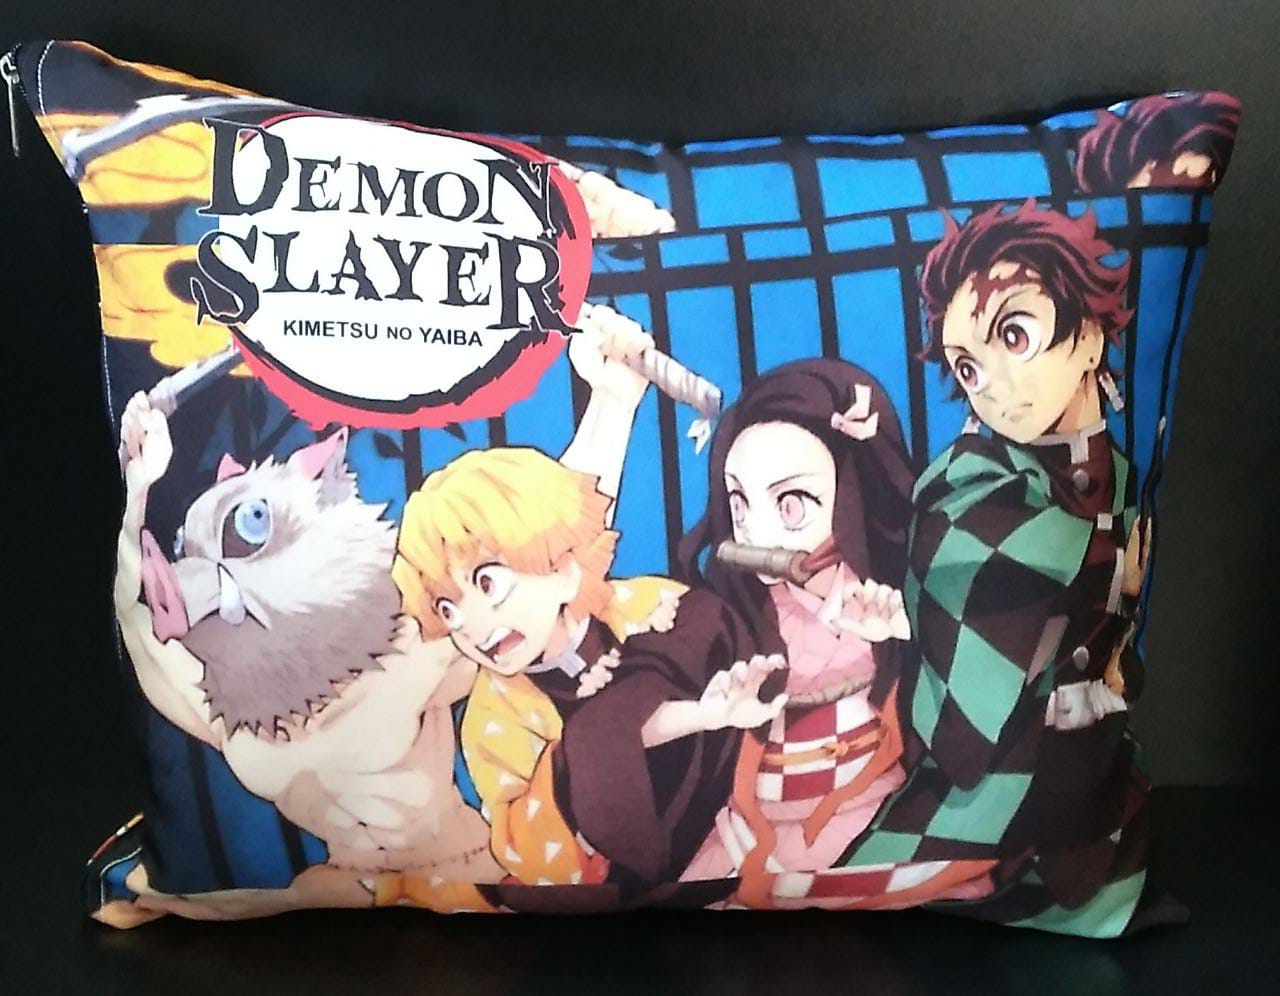 ALMOFADA DEMON SLAYER